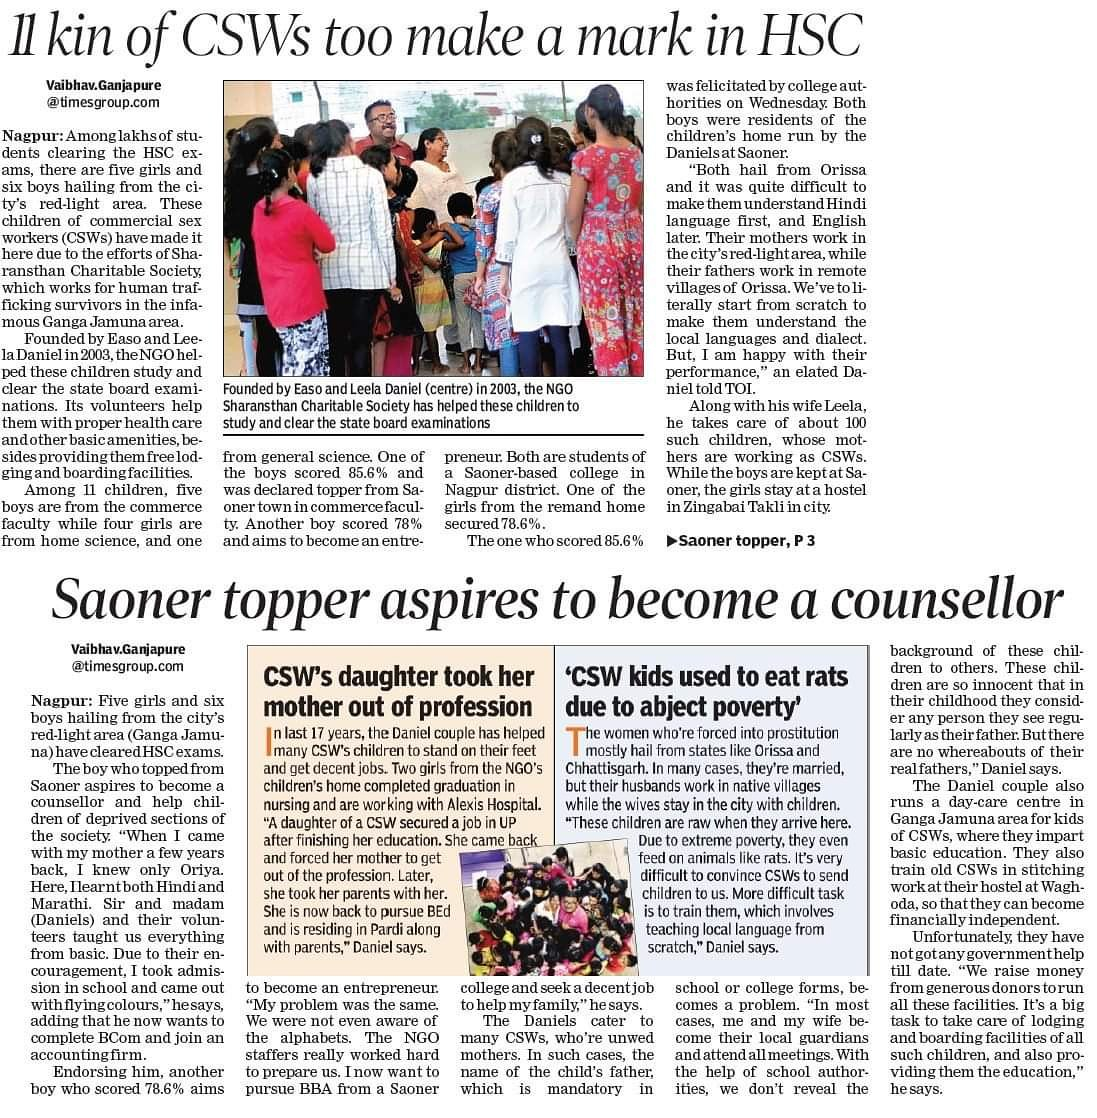 Among lakhs clearing #HSC exams, there are five girls & six boys hailing from red-light area. These children of commercial sex workers (#CSWs) made it here due to efforts of Sharansthan Charitable Society, which works for human trafficking survivors in infamous Ganga Jamuna area.